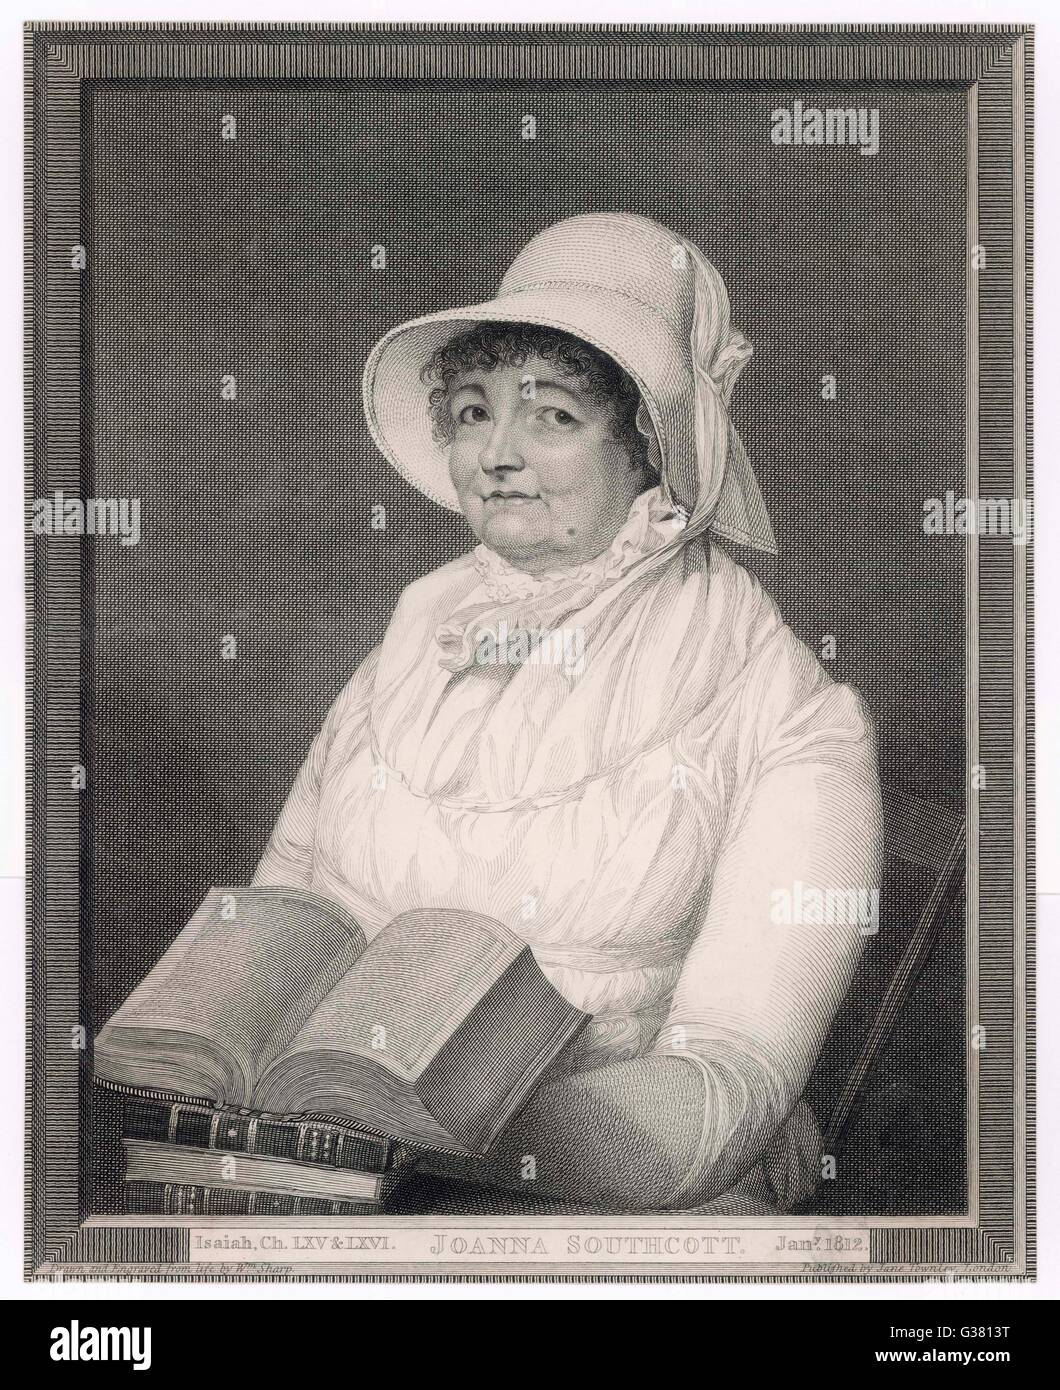 JOANNA SOUTHCOTT prophetess and founder of sect         Date: 1750 - 1814 - Stock Image